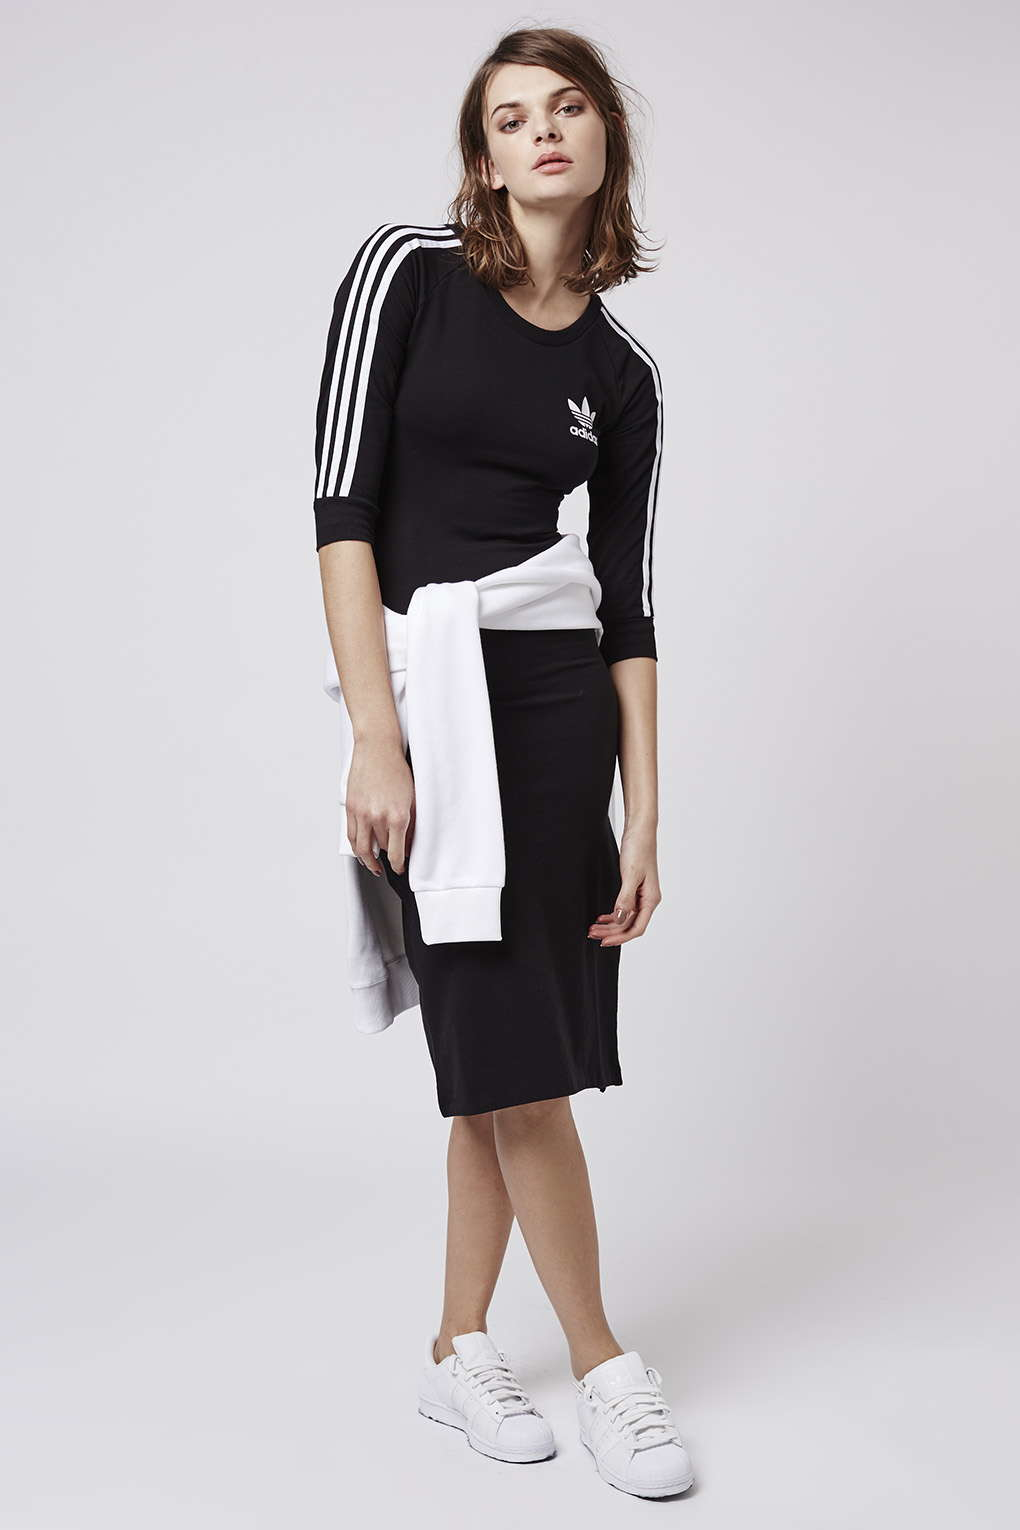 363e3e1dd63 TOPSHOP Three Stripe Dress By Adidas Originals in Black - Lyst